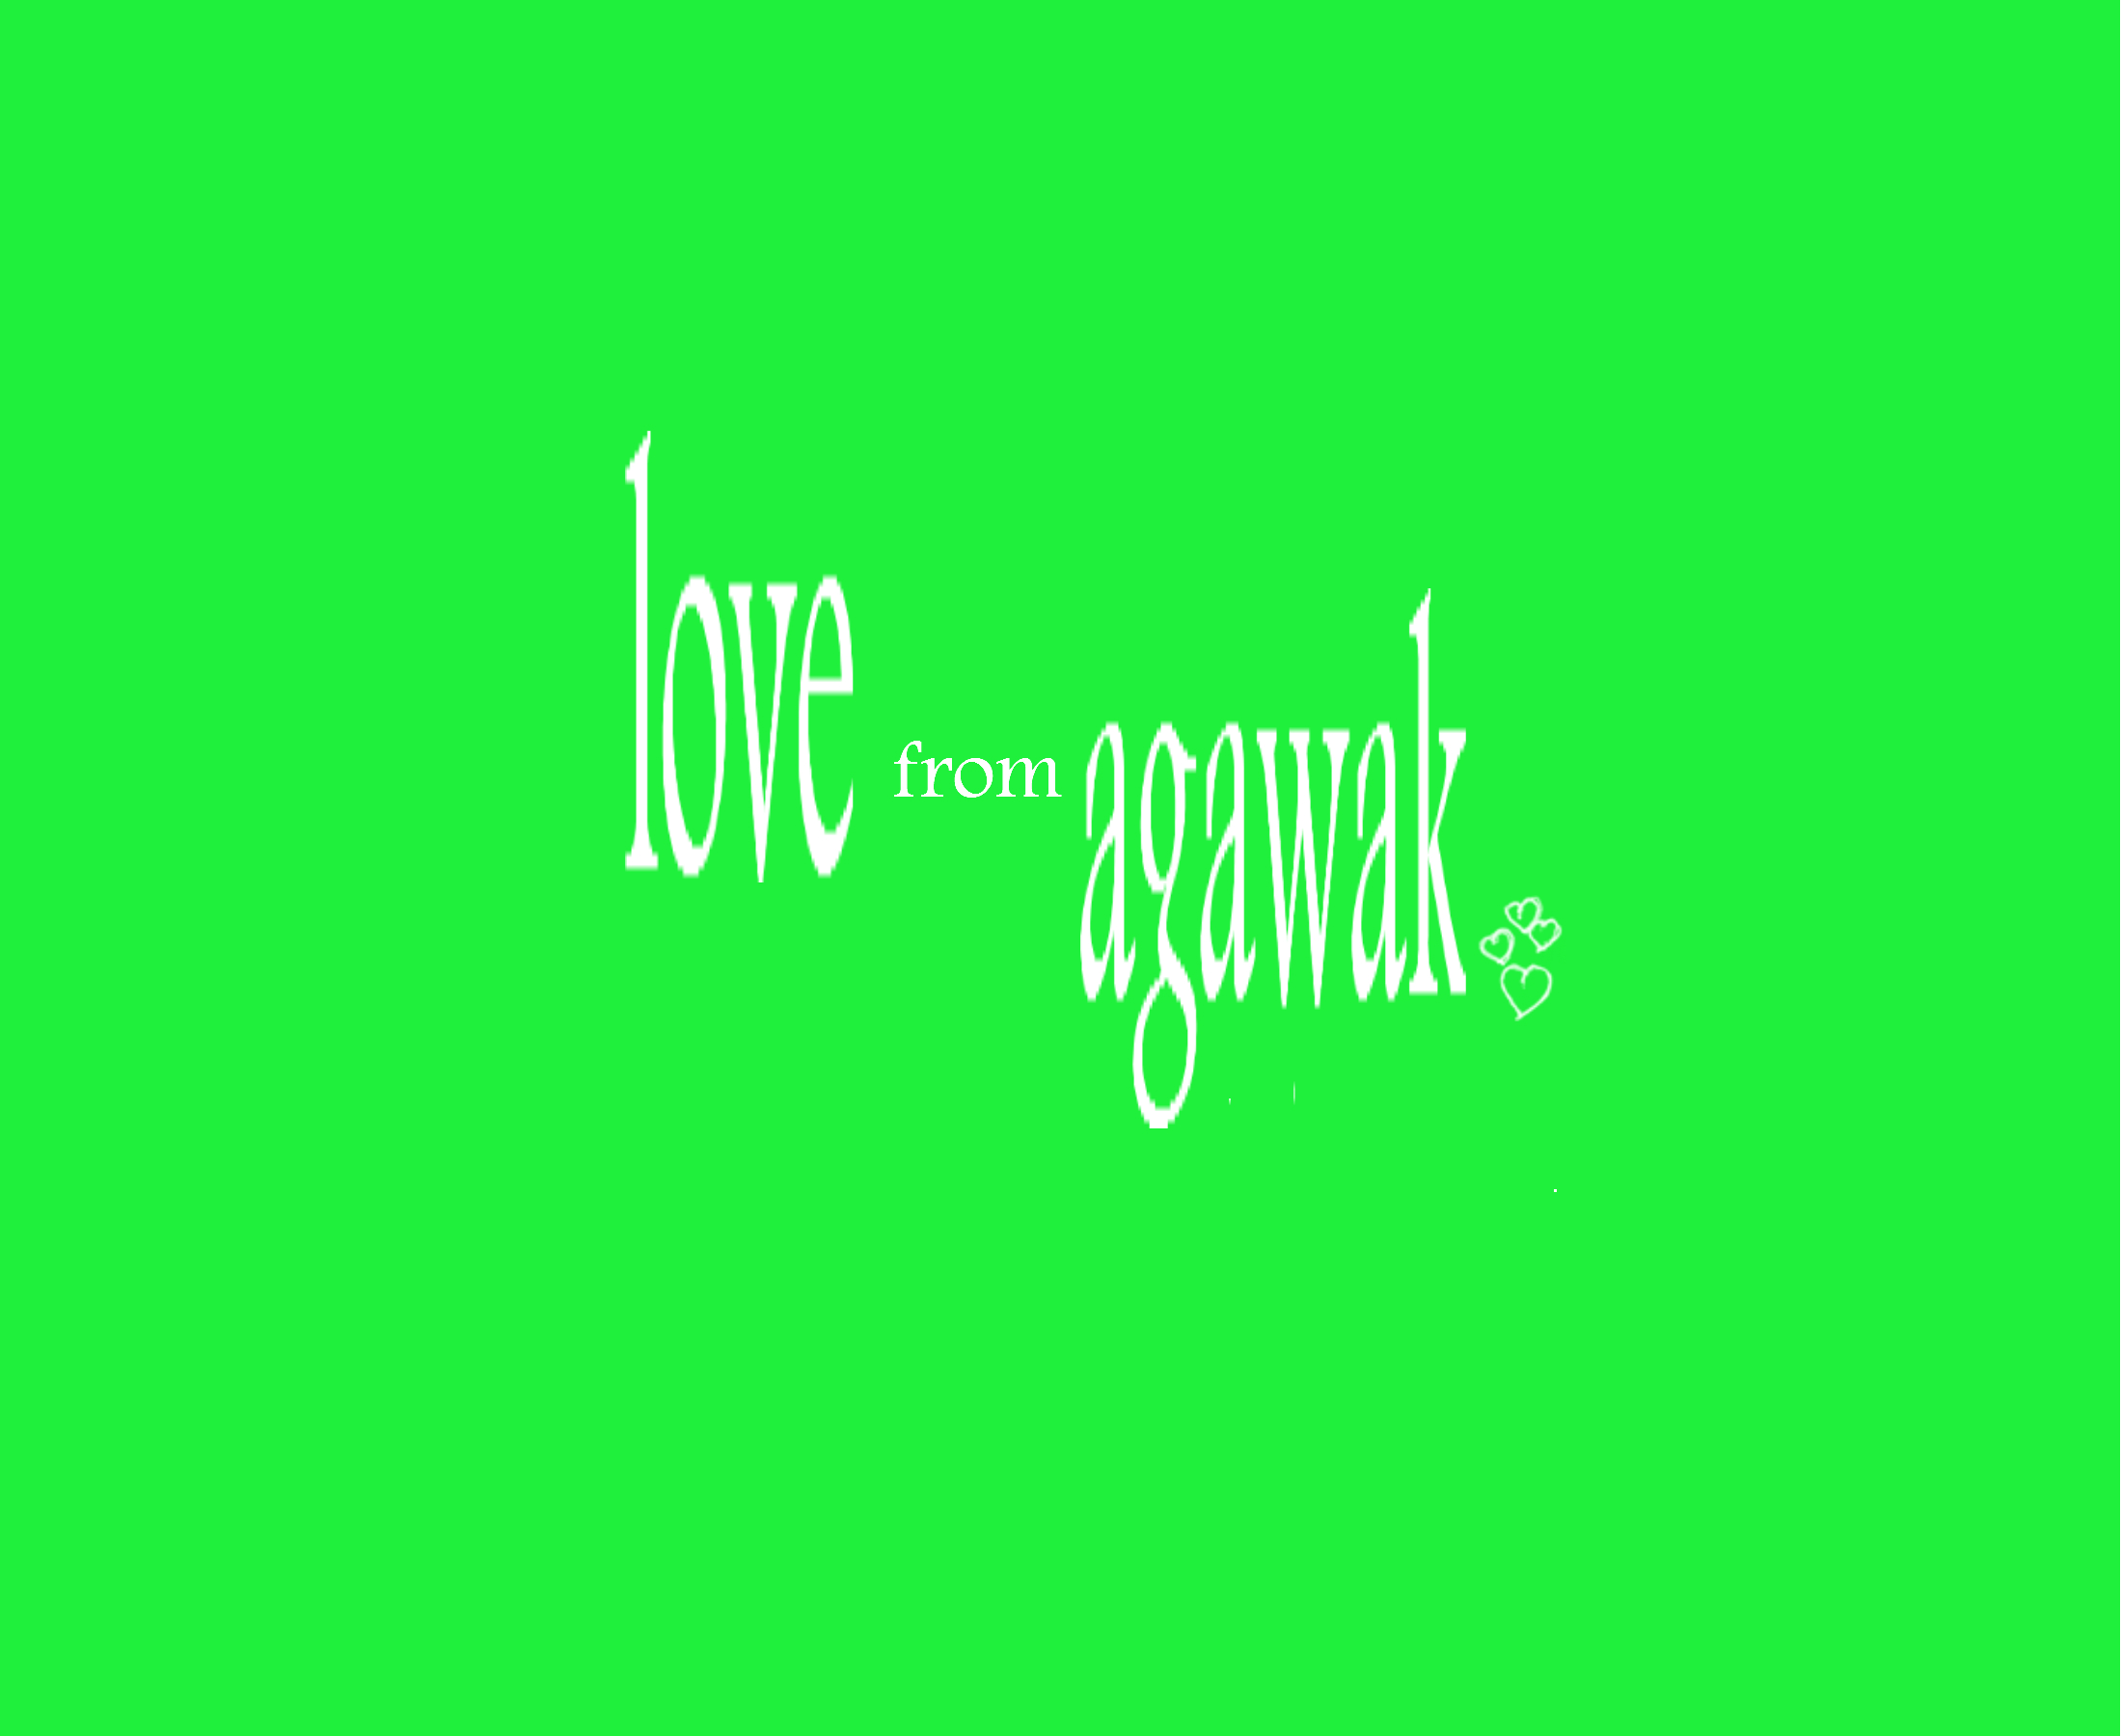 LOVE FROM AGAWAK